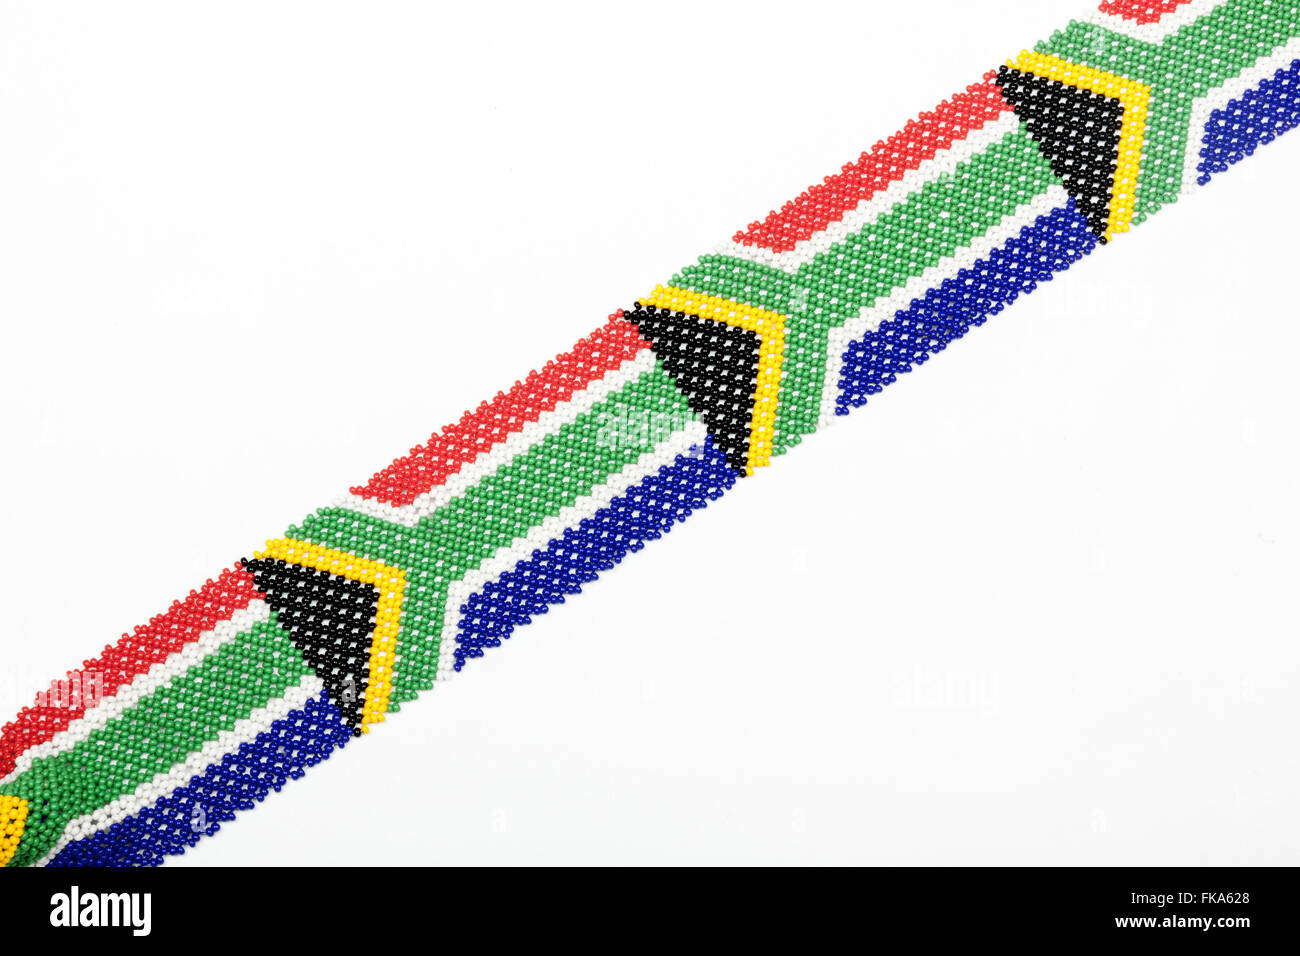 South African Flag Souvenir Stockfotos & South African Flag Souvenir ...